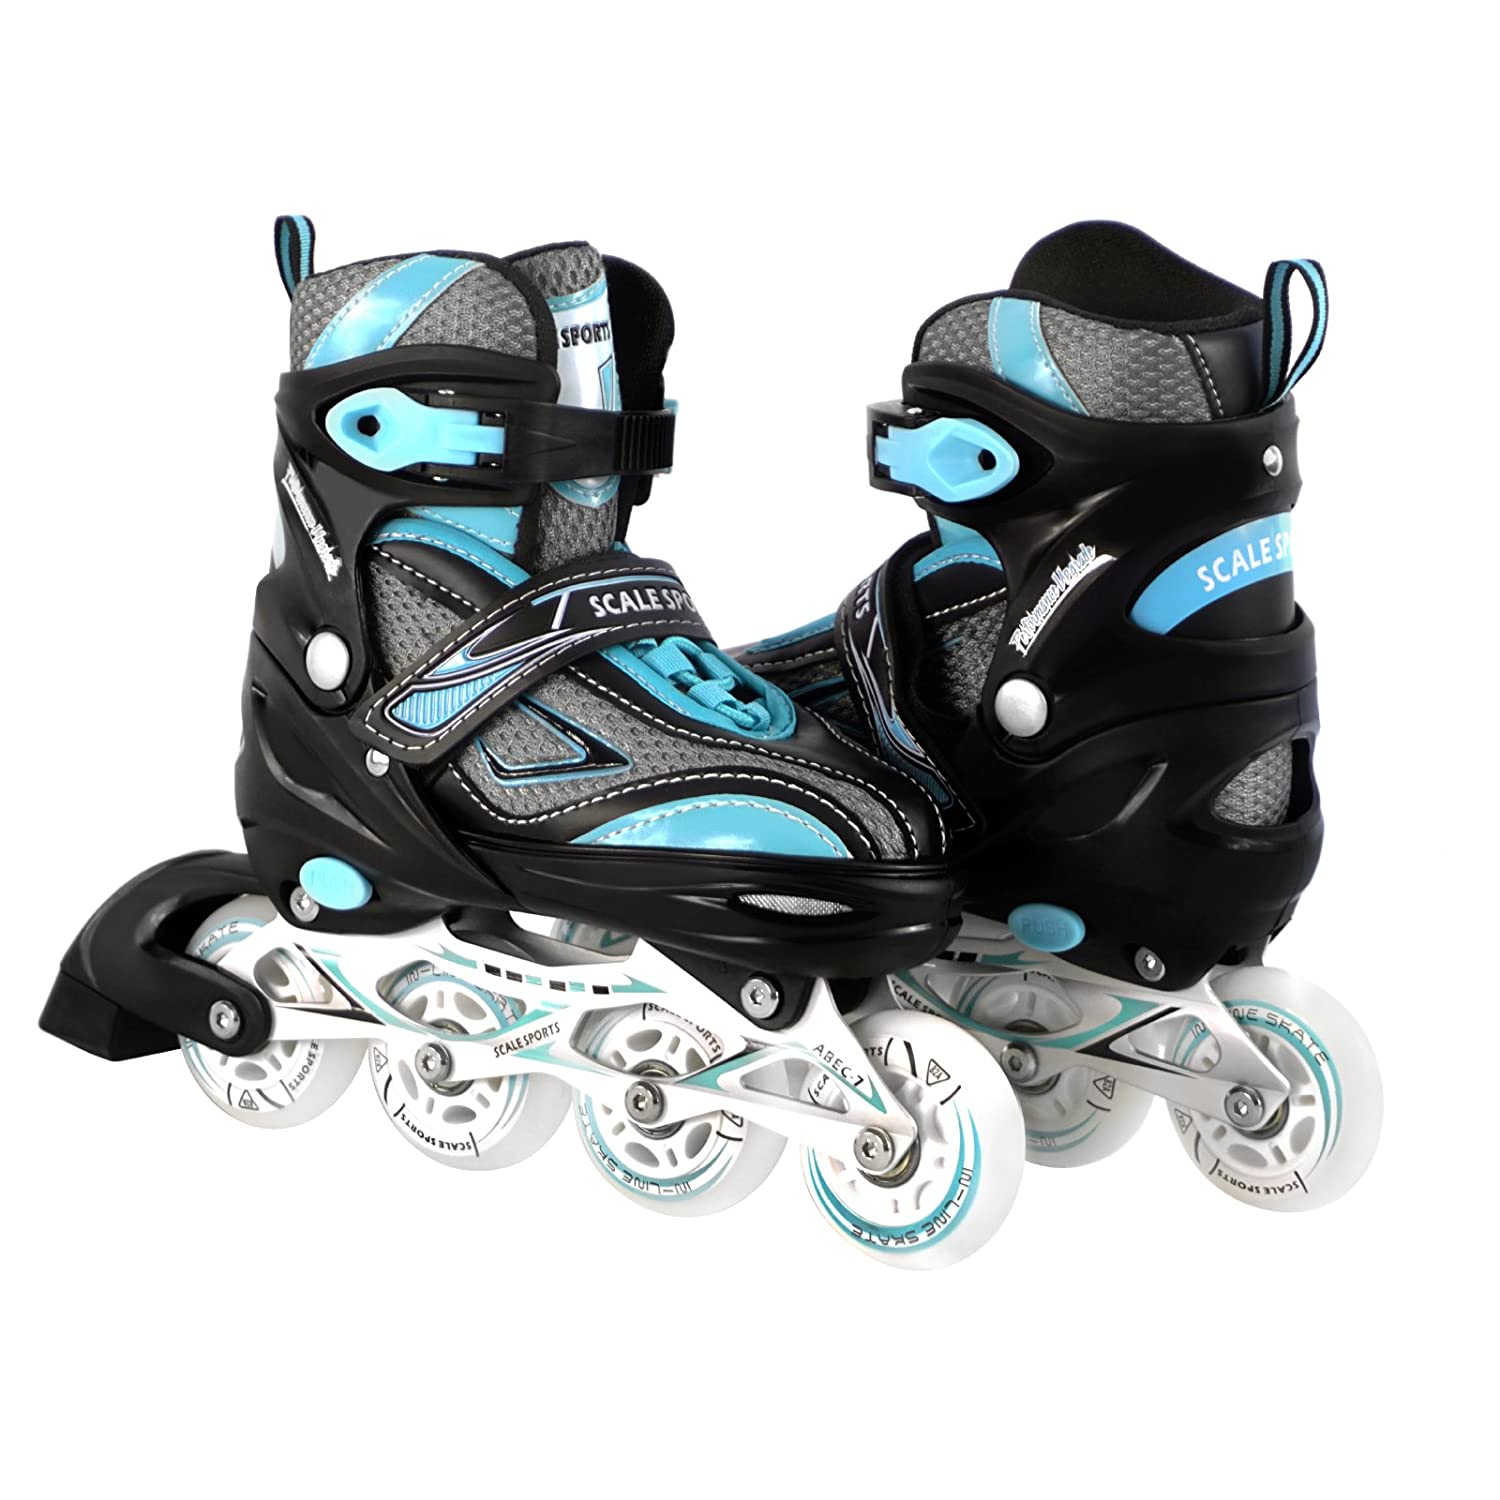 Kids Teen Adjustable Inline Skates for Girls and Boys Durable Outdoor Roller Blades Illuminating Front Wheel